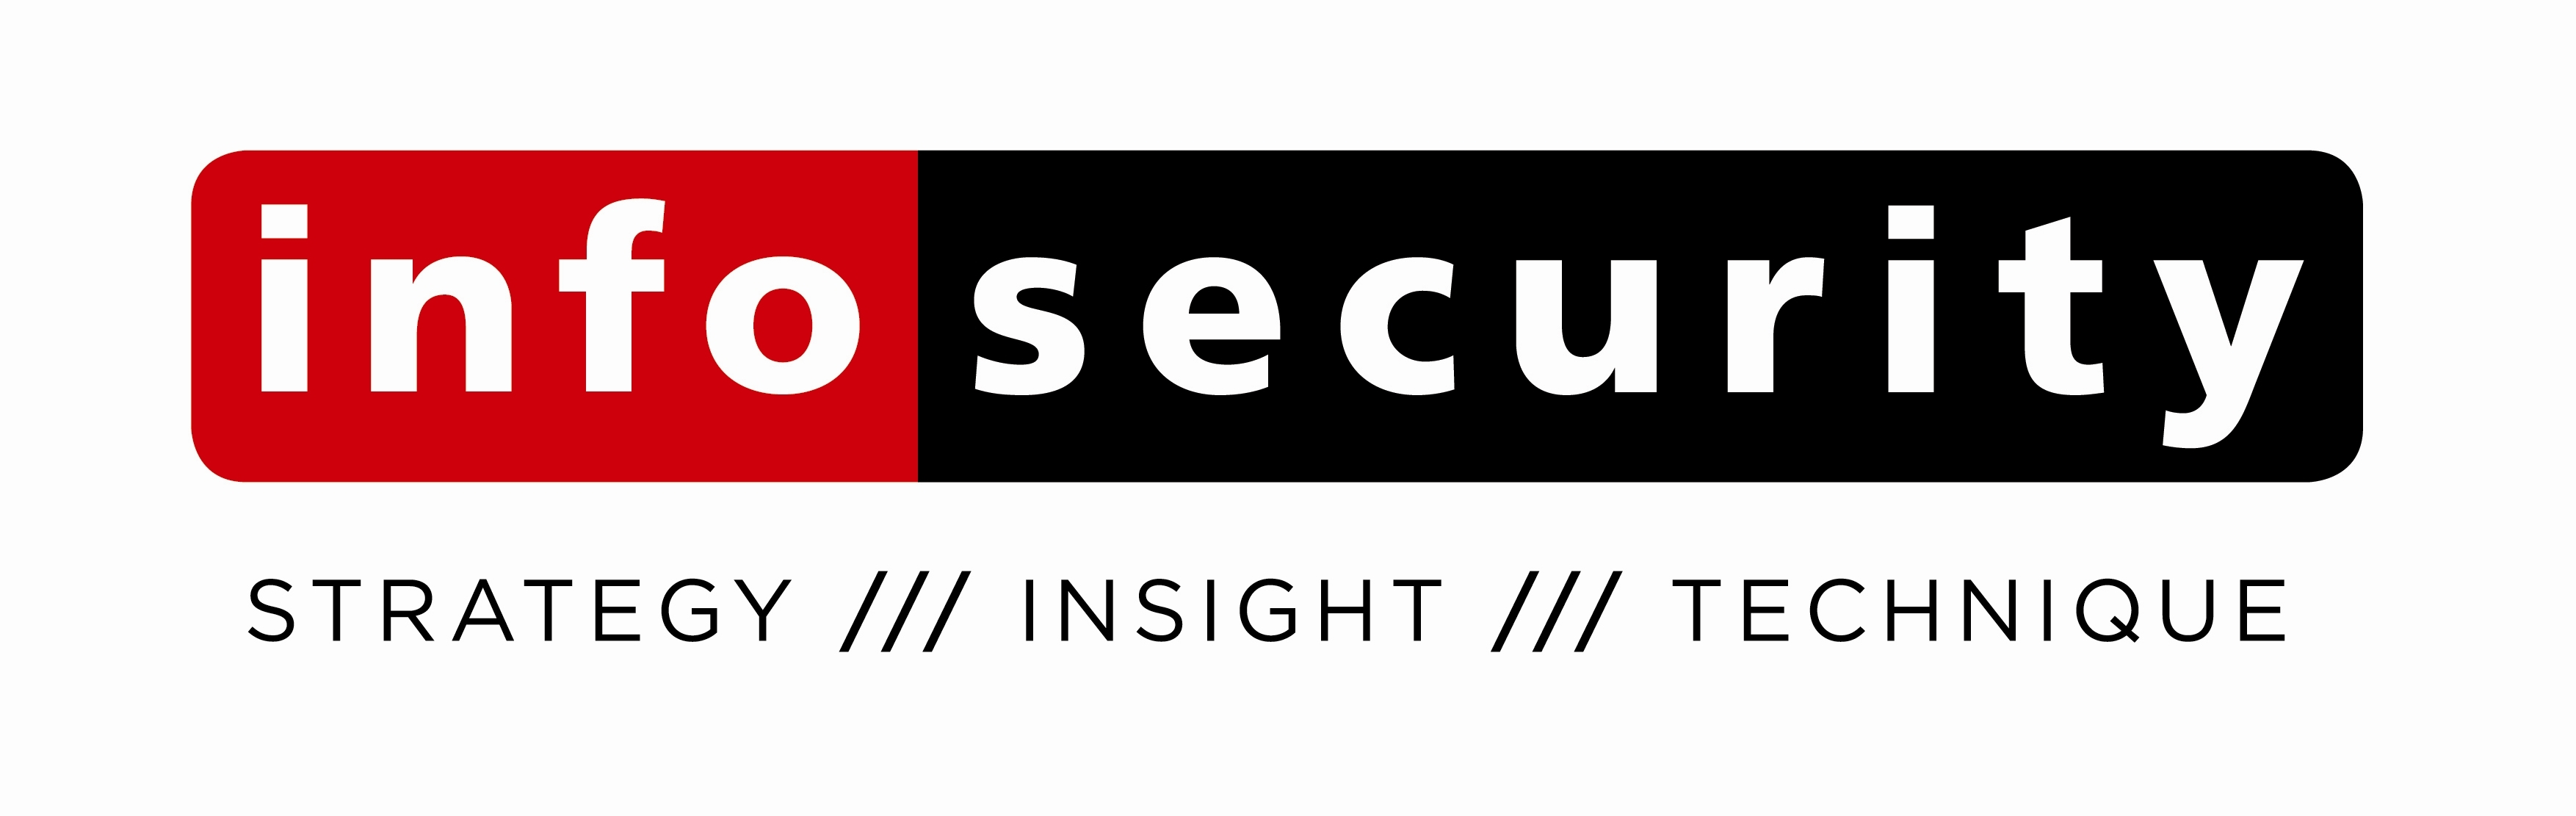 6th – 7th December 2016 – Egress is sponsoring and presenting at the Infosecurity Conference 2016 in Boston